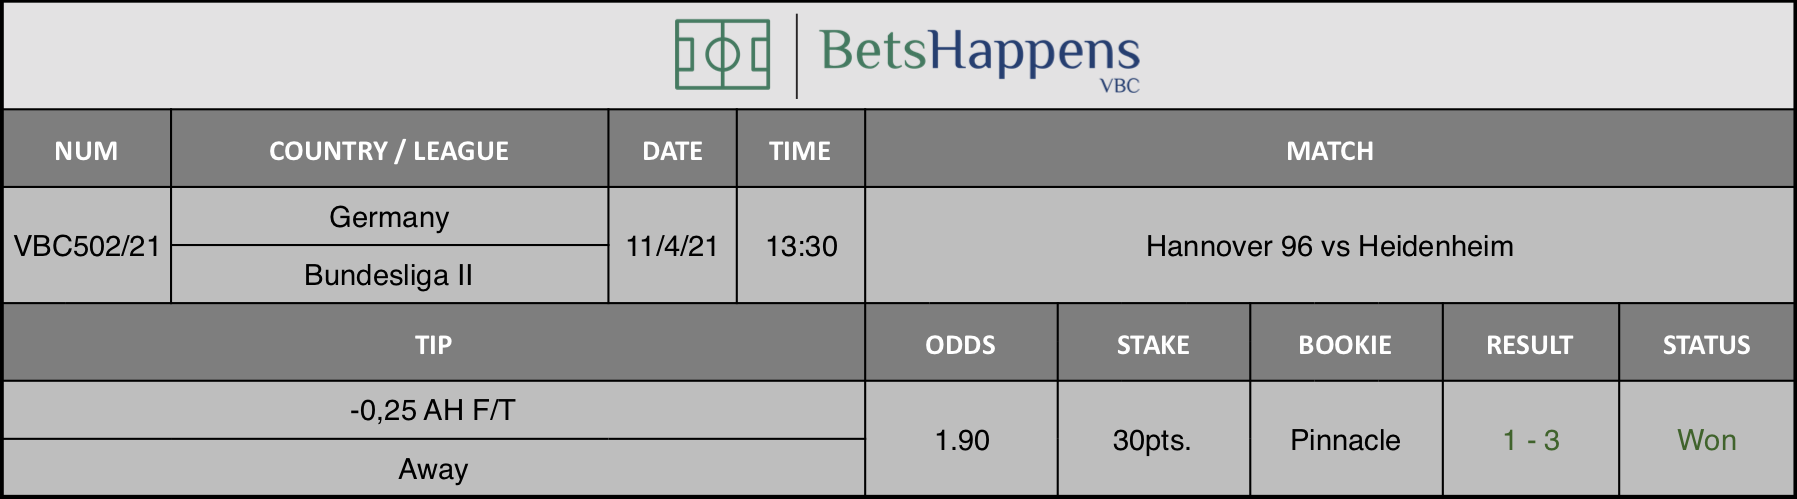 Results of our tip for the Hannover 96 vs Heidenheim match where -0,25 AH F/T Away is recommended.